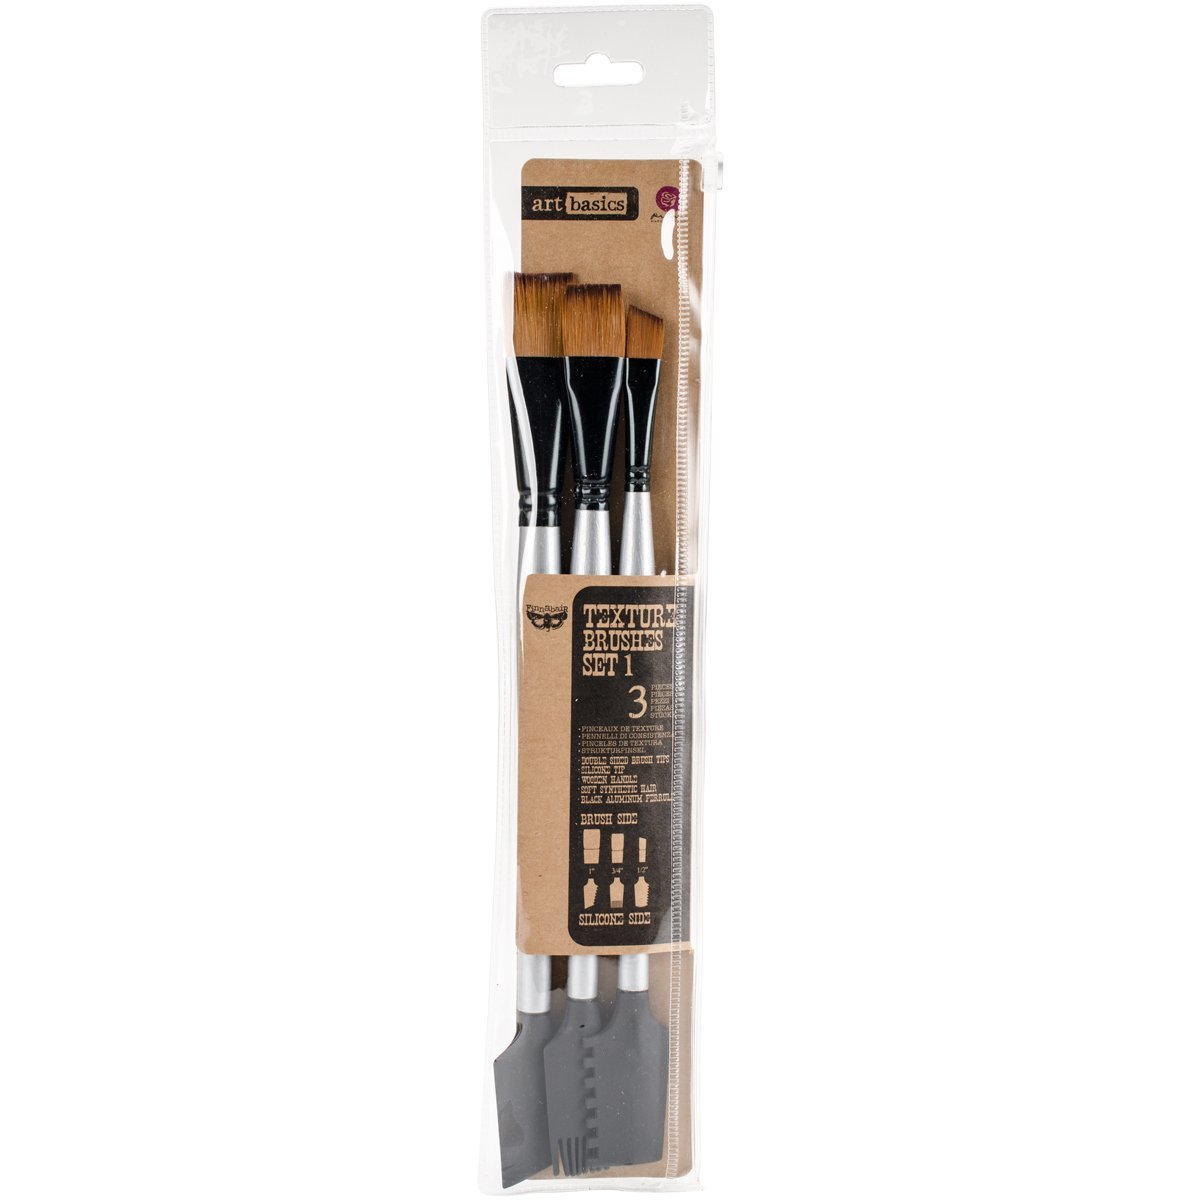 No Need To Spend A Fortune On These: 963873 Texture No.1 Finnabair Art Basics Double Ended